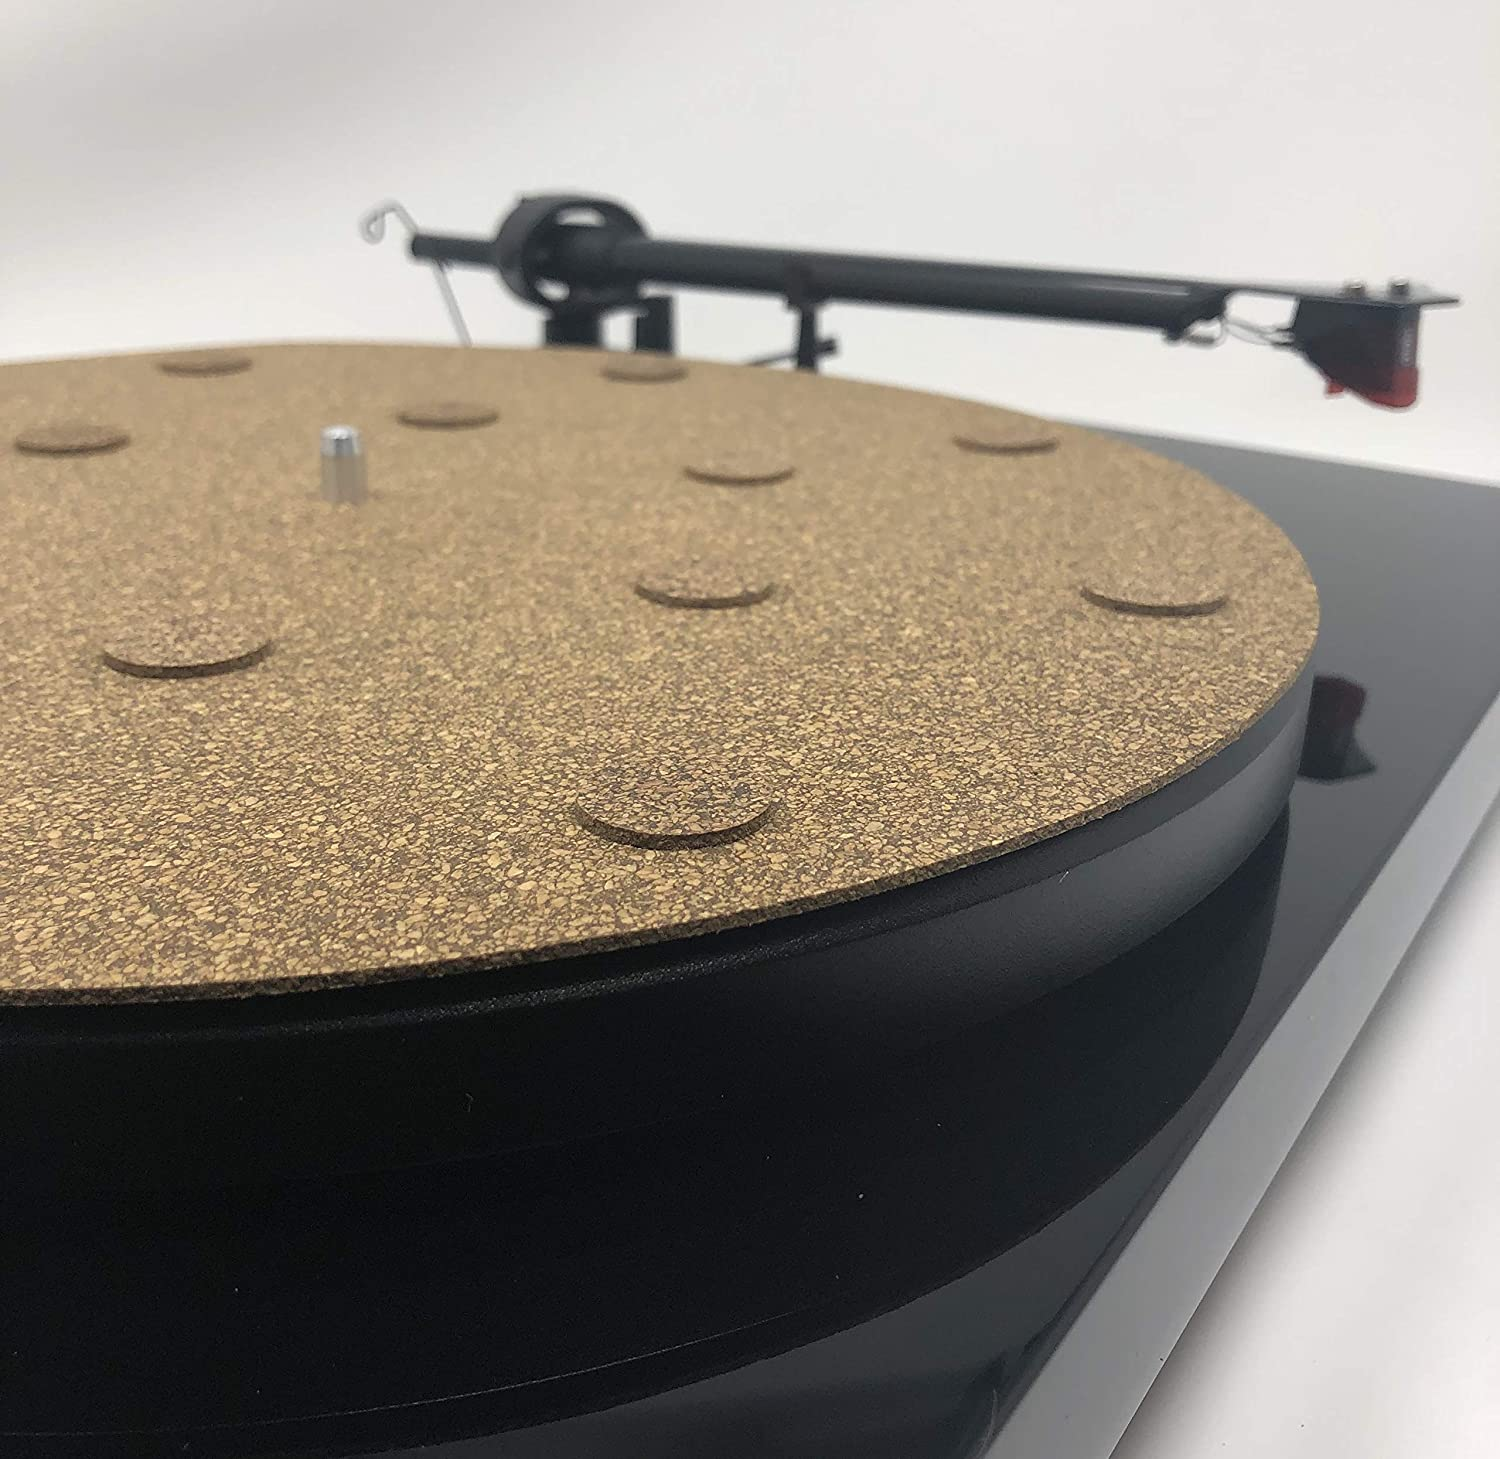 CoRkErY Decoupled Cork N Rubber Turntable Platter Ma